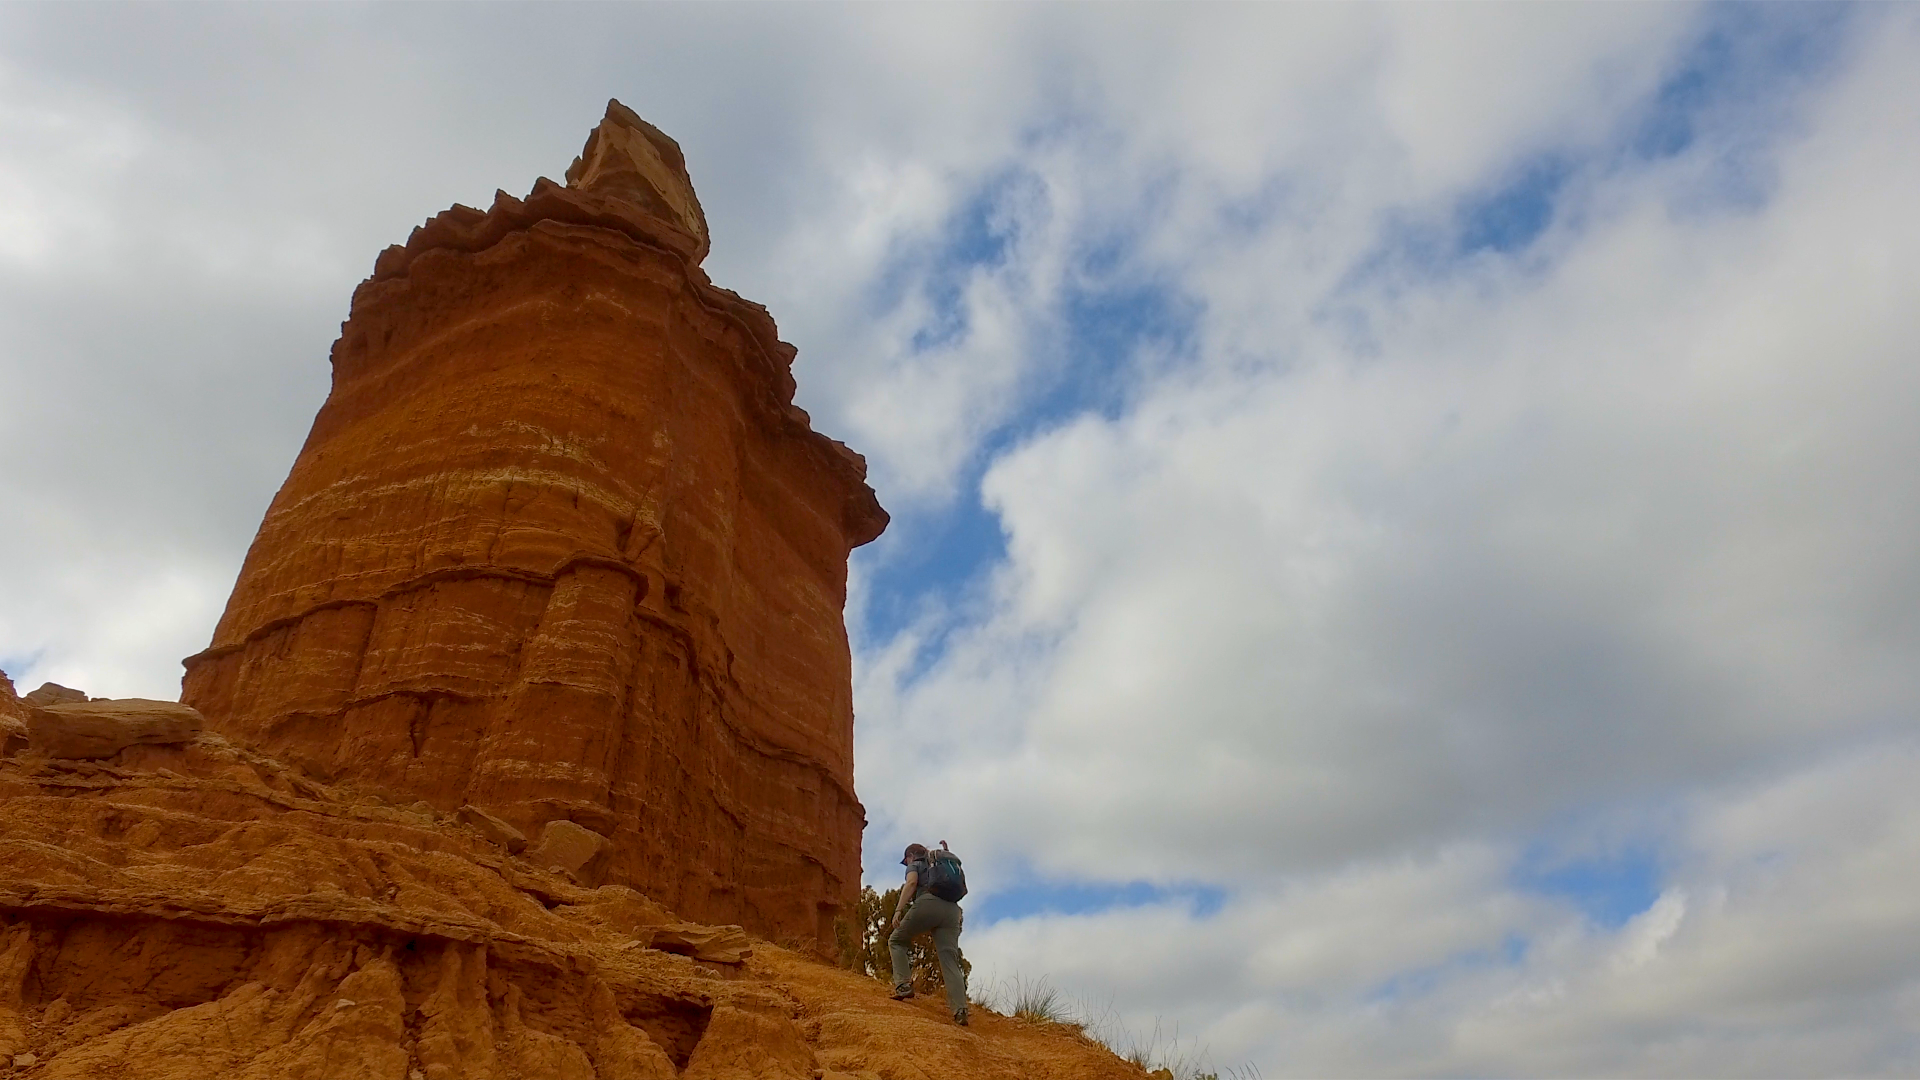 This is Texas - Palo Duro Canyon Expedition